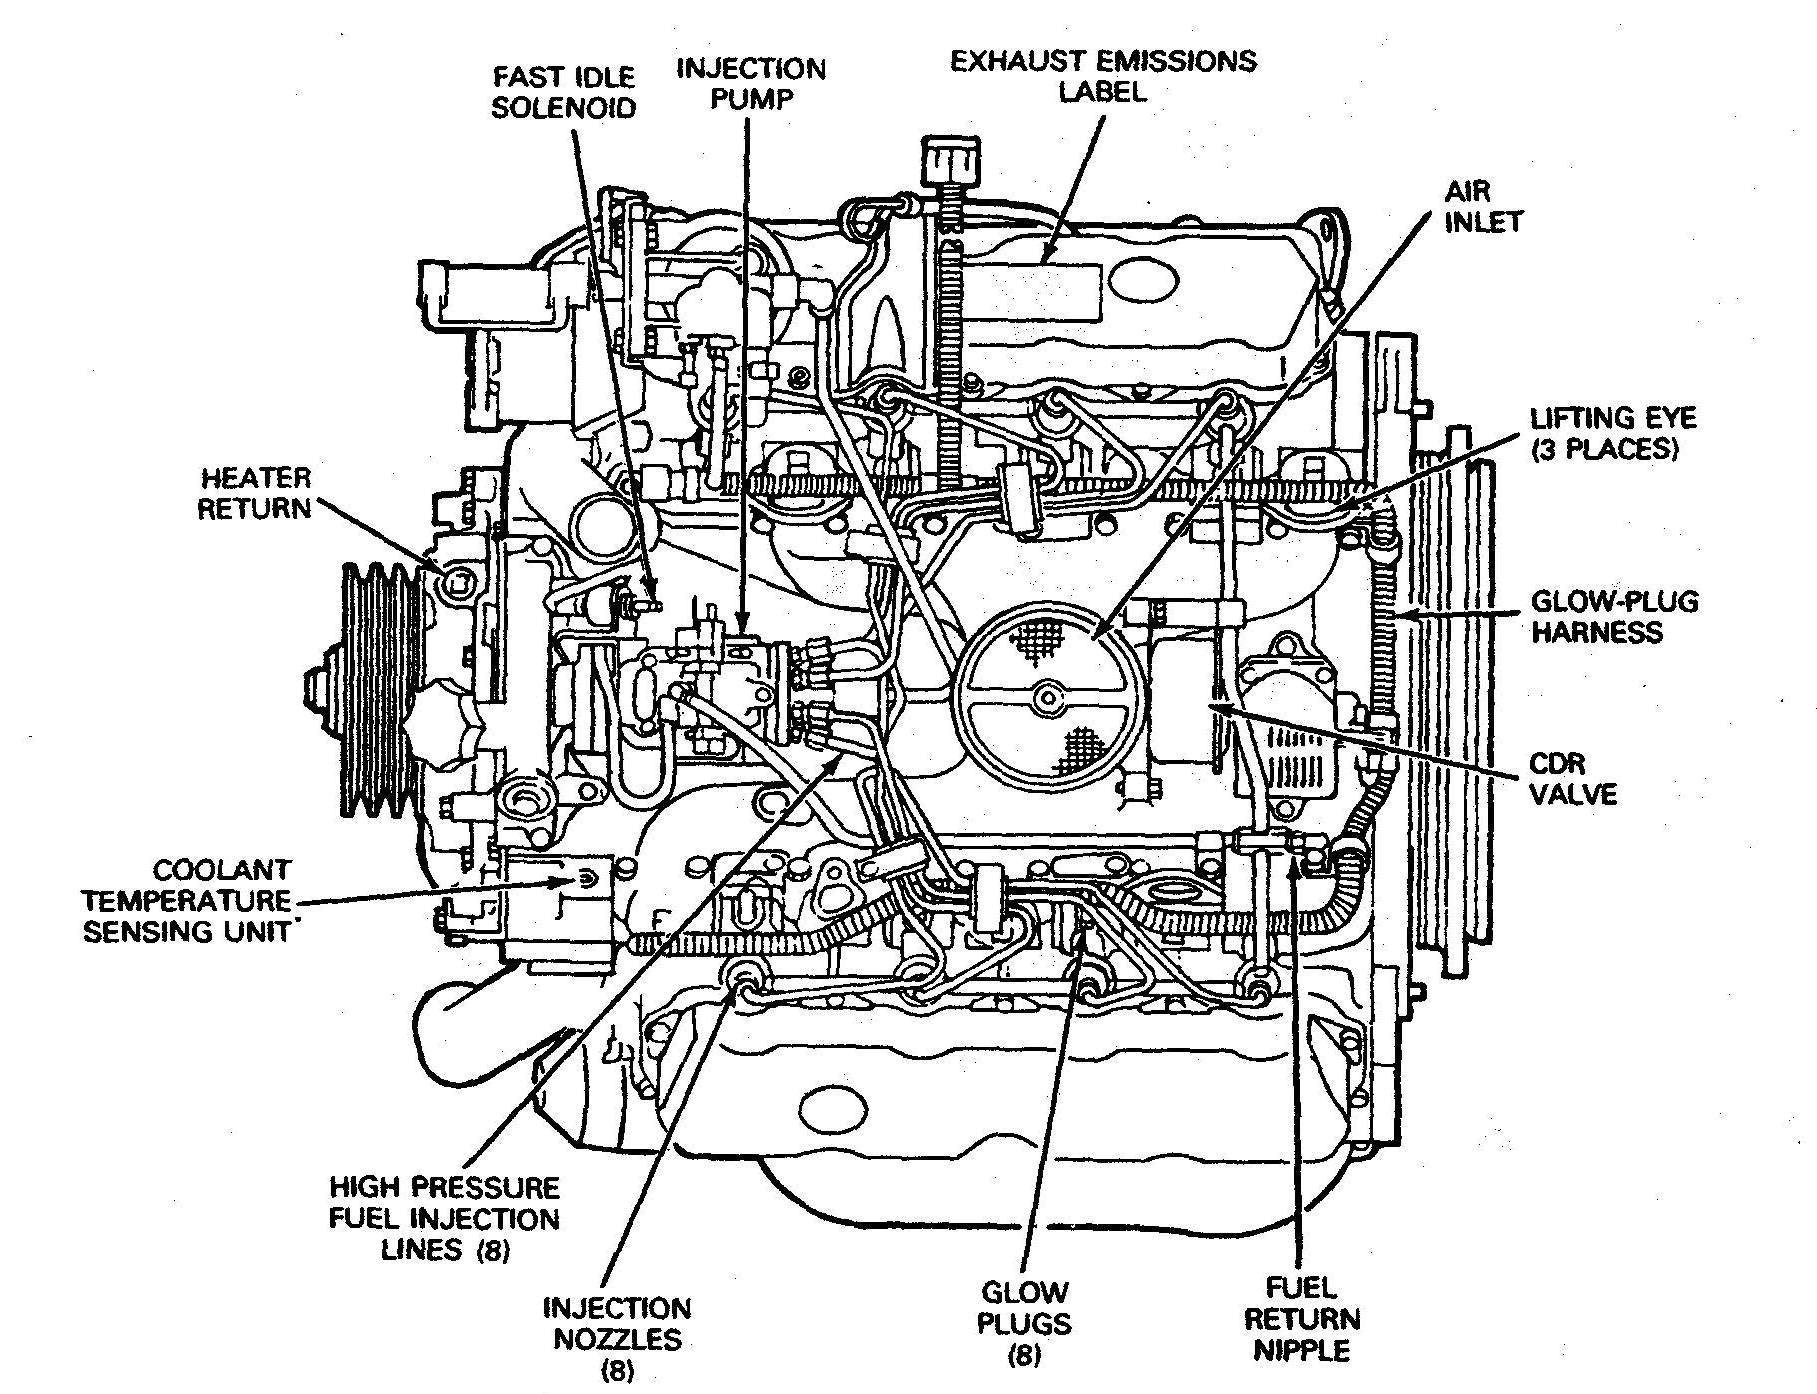 Diesel Engine Diagram Labeled Engine Diagram Labeled Car Engine Diagram Simple with Example Pics Of Diesel Engine Diagram Labeled